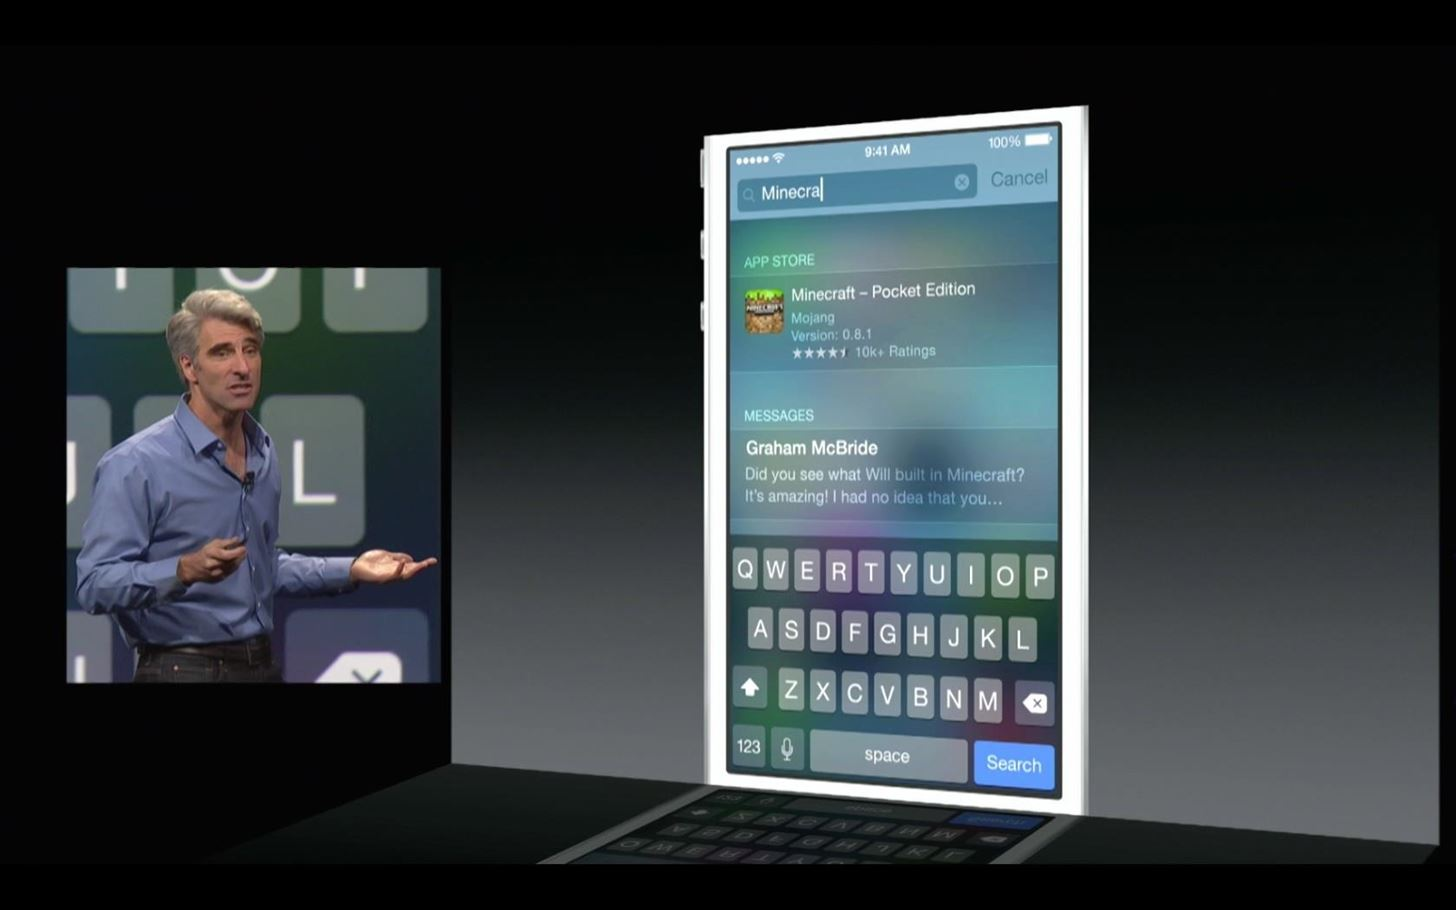 Apple's iOS 8 Coming This Fall—Here's What's New